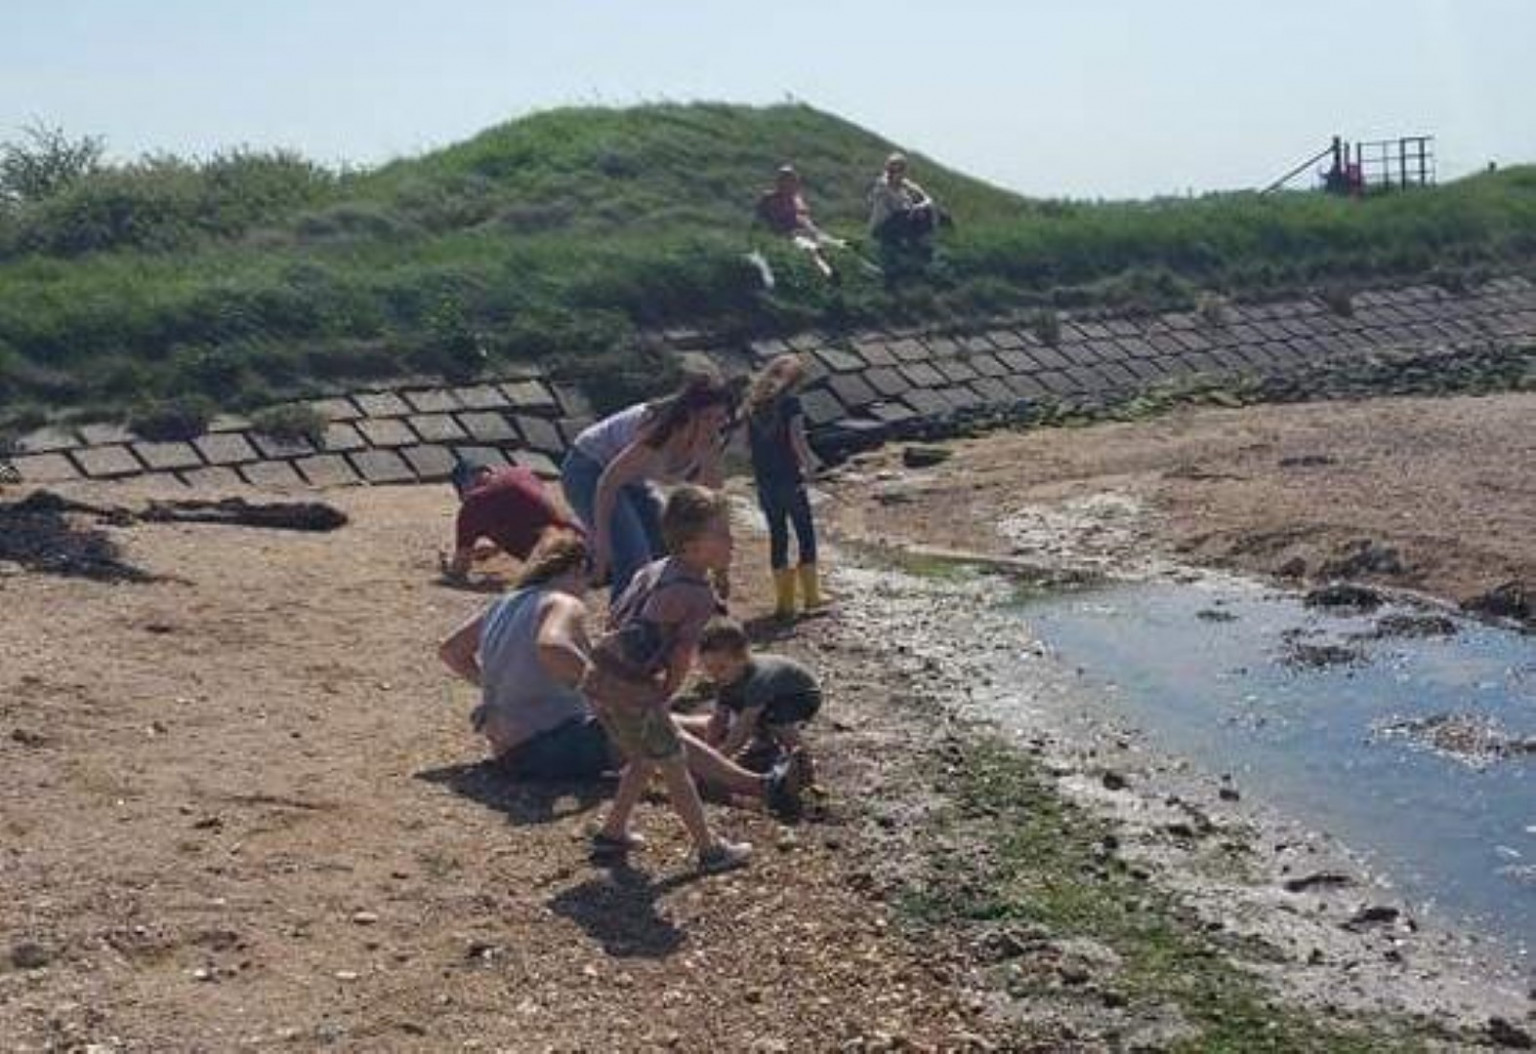 Families digging around for fossils at Creeksea Cliff